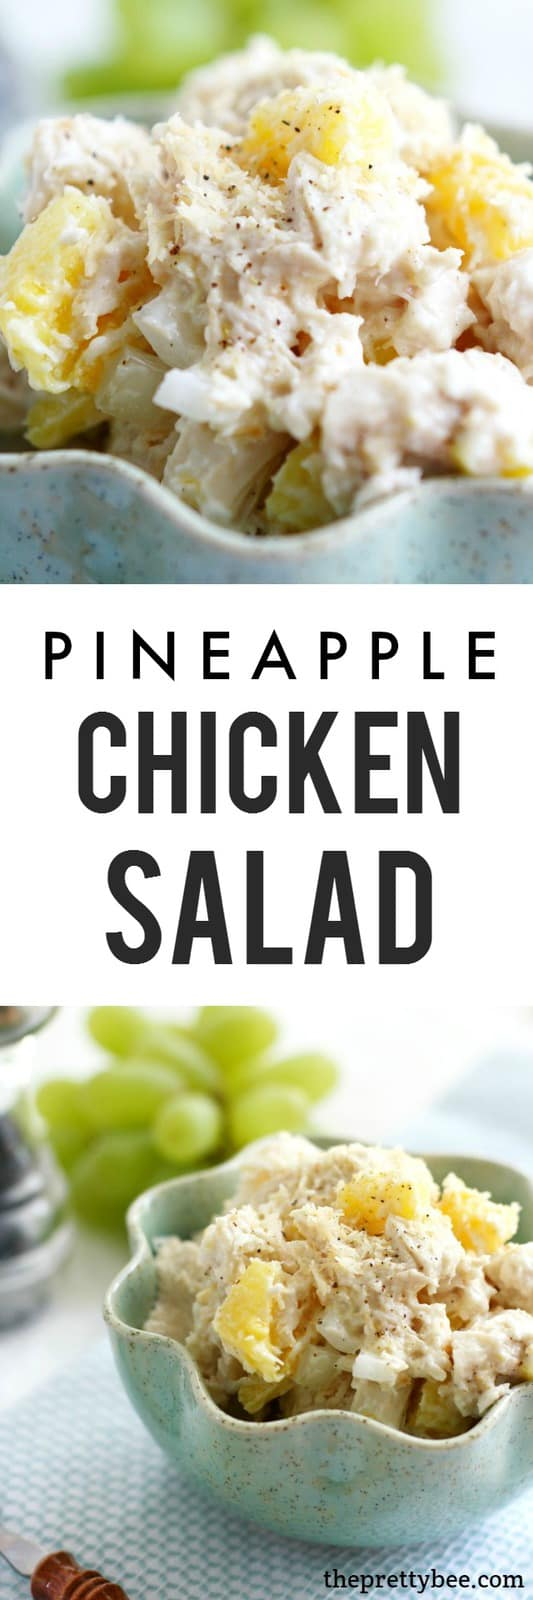 Pineapple chicken salad is a delicious twist on a classic recipe!